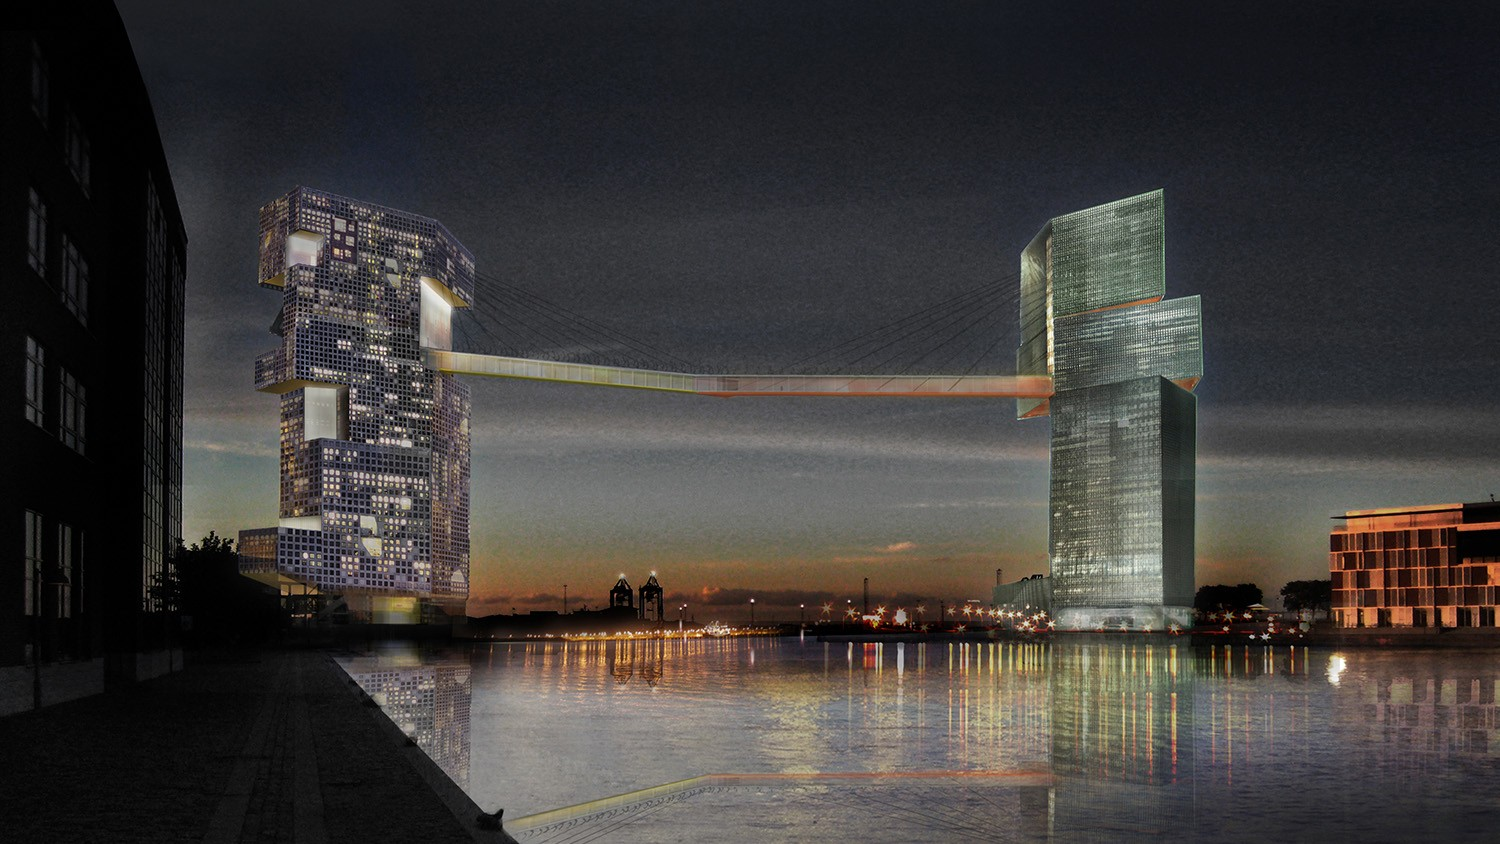 https://s3.us-east-2.amazonaws.com/steven-holl/uploads/projects/project-images/StevenHollArchitects_LM_NightView_WH.jpg